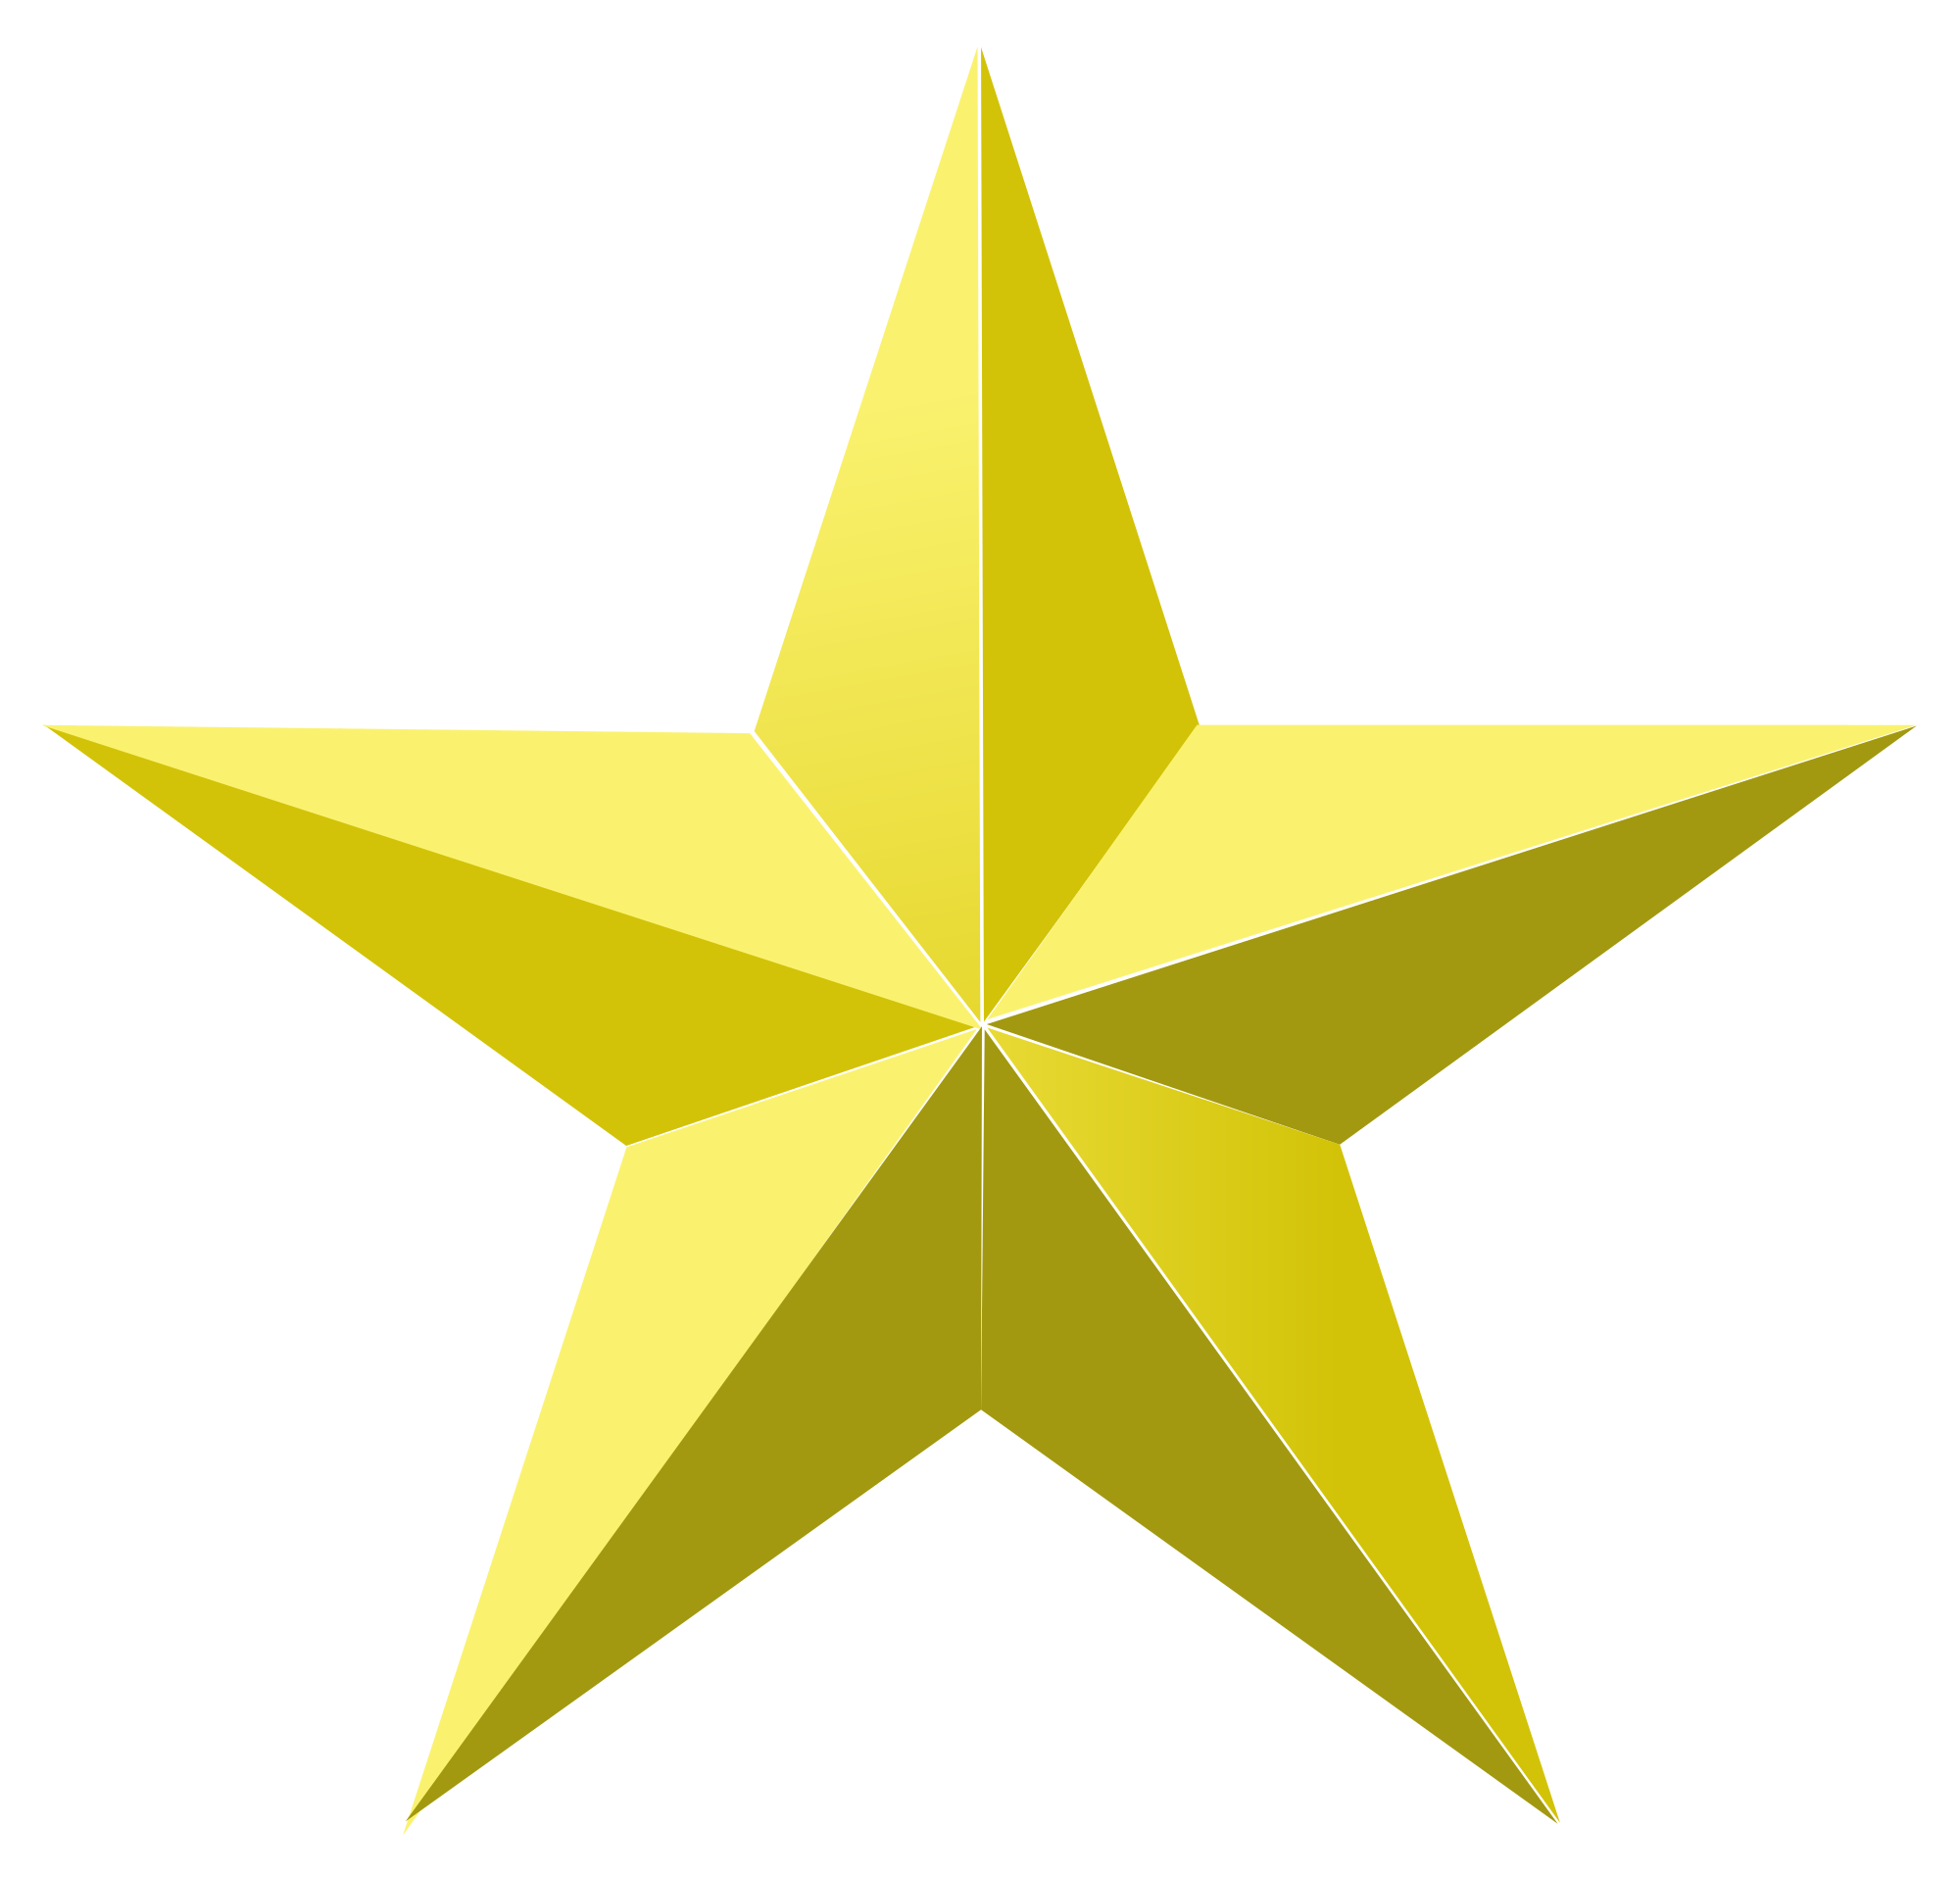 Gold star line clipart banner freeuse download Gold Star PNG Image - PurePNG | Free transparent CC0 PNG Image Library banner freeuse download